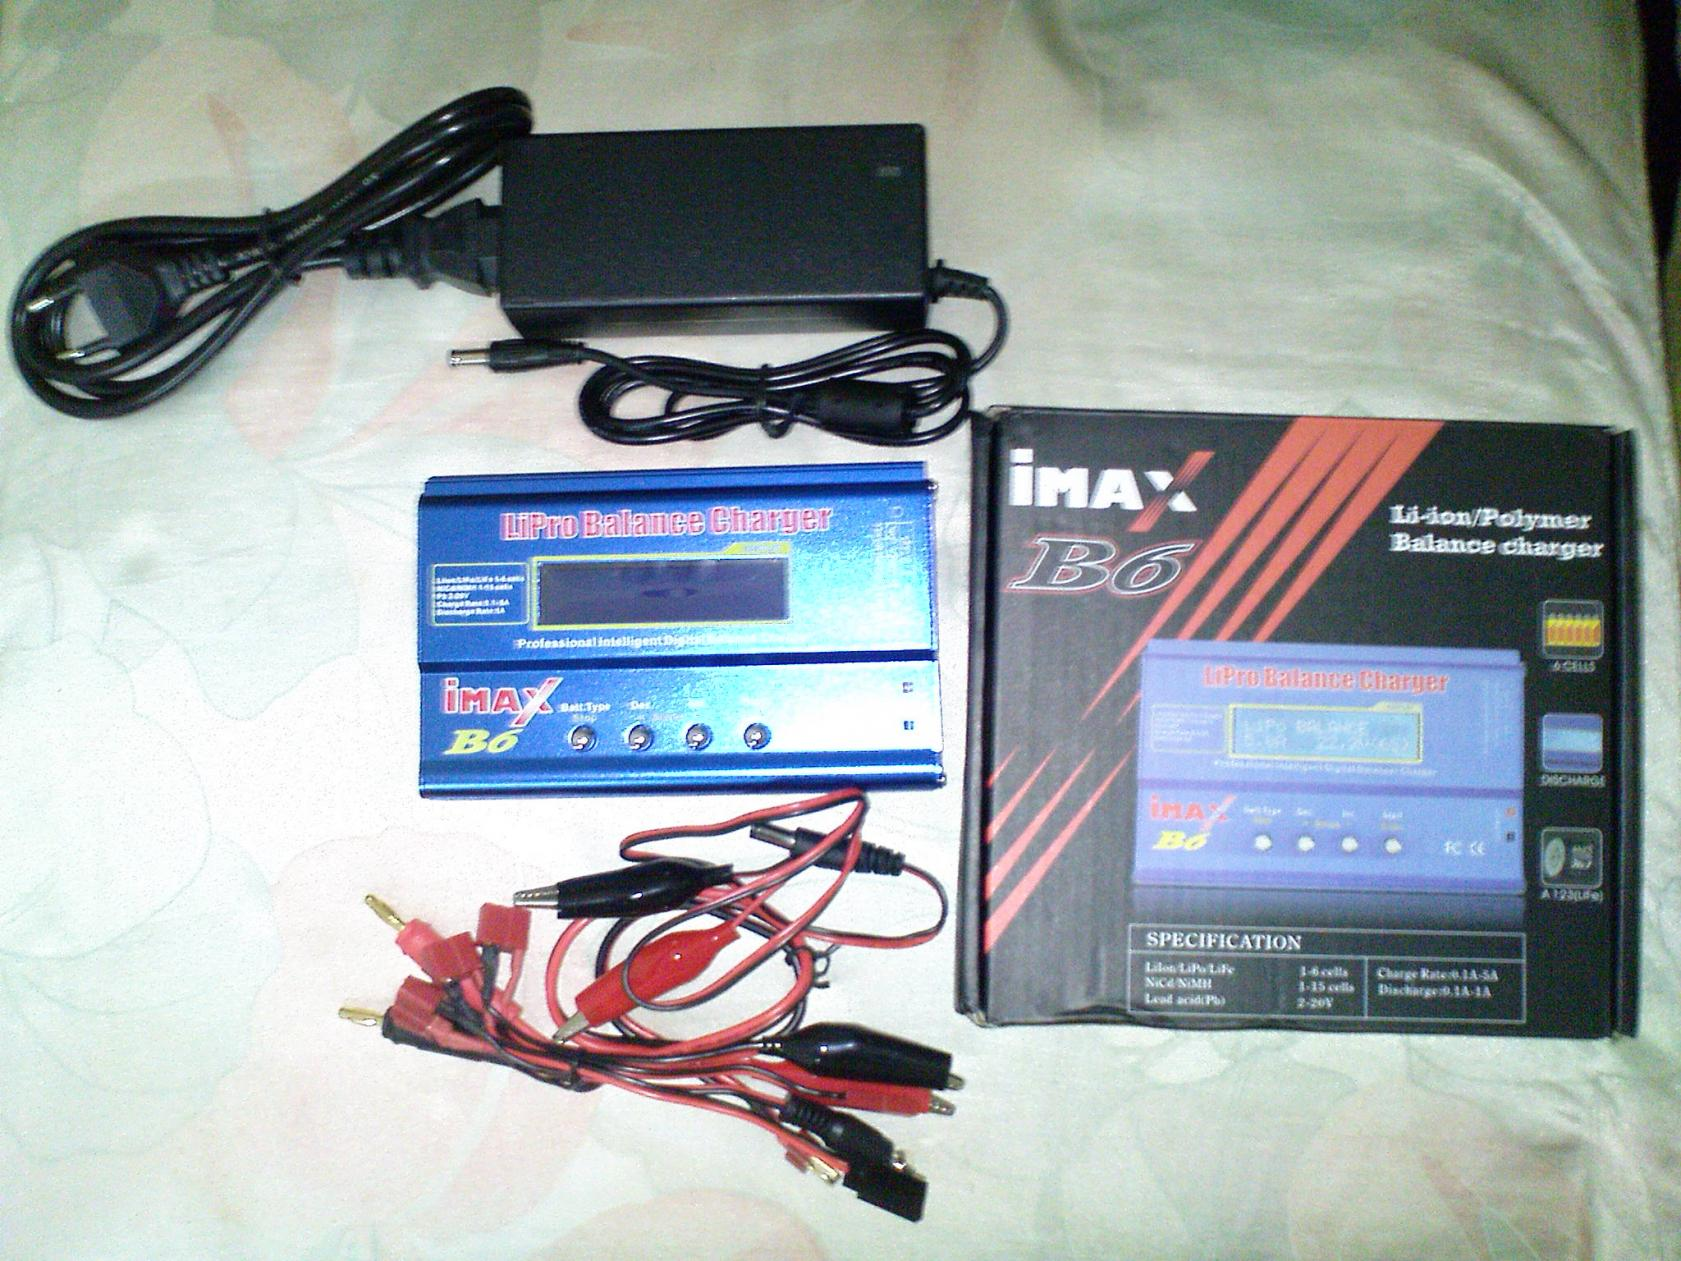 Rc Stuff Selling Page 76 R C Tech Forums Work With Prolux Lipo Charger This Balancer Can Be Used To 2 3 Dsc00183